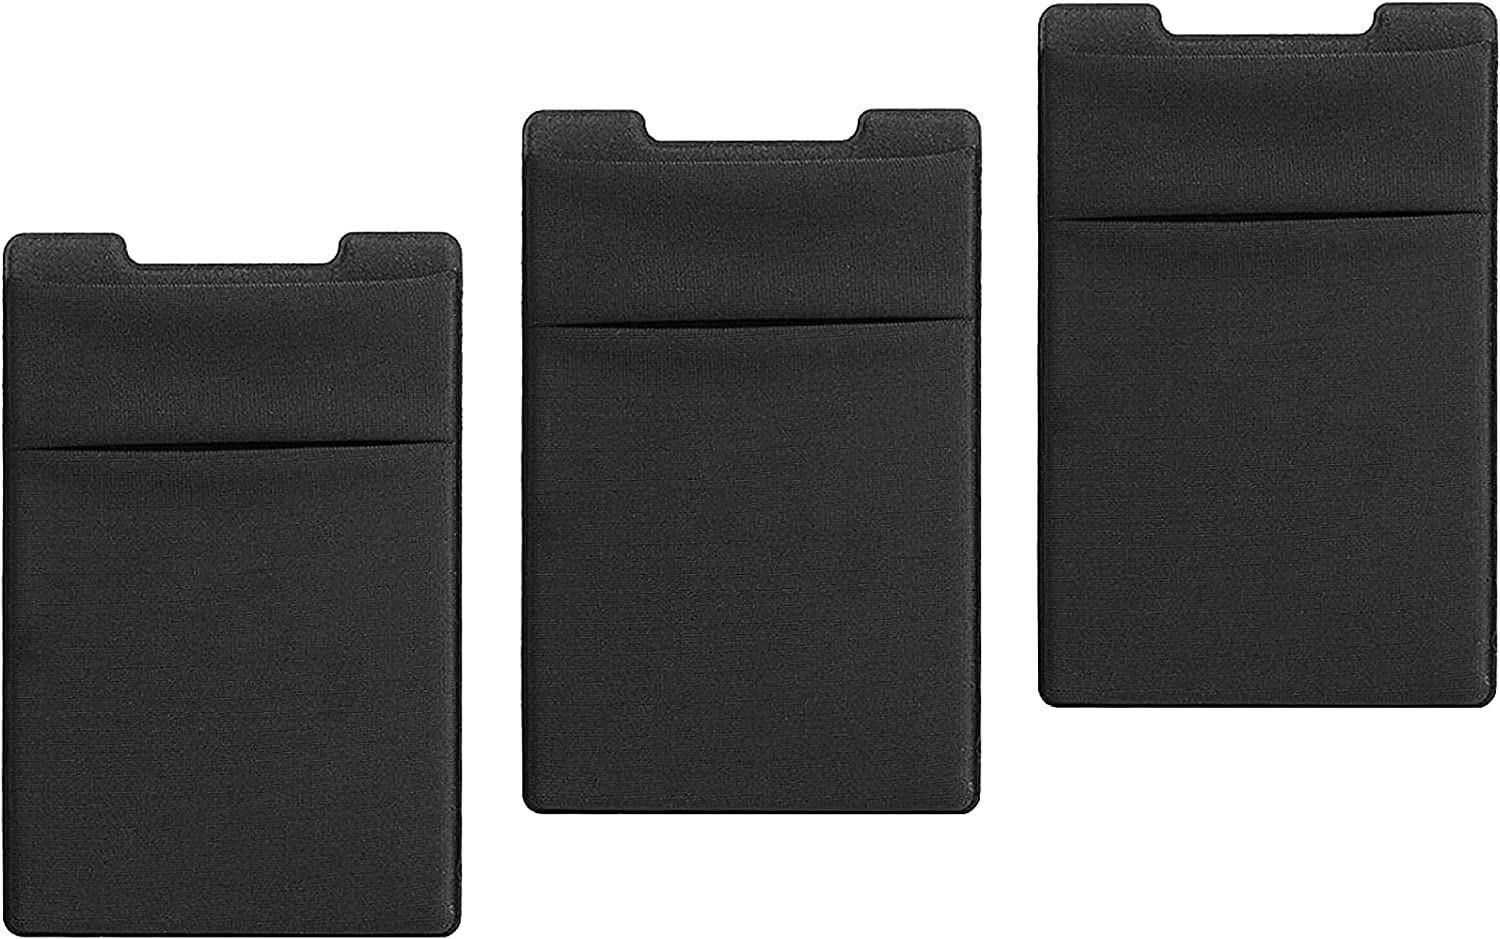 TalkWorks Phone Card Holder Adhesive Wallet Stick On (3 Pack) Stretchy Dual Pocket Cell Phone Back Case Sleeve